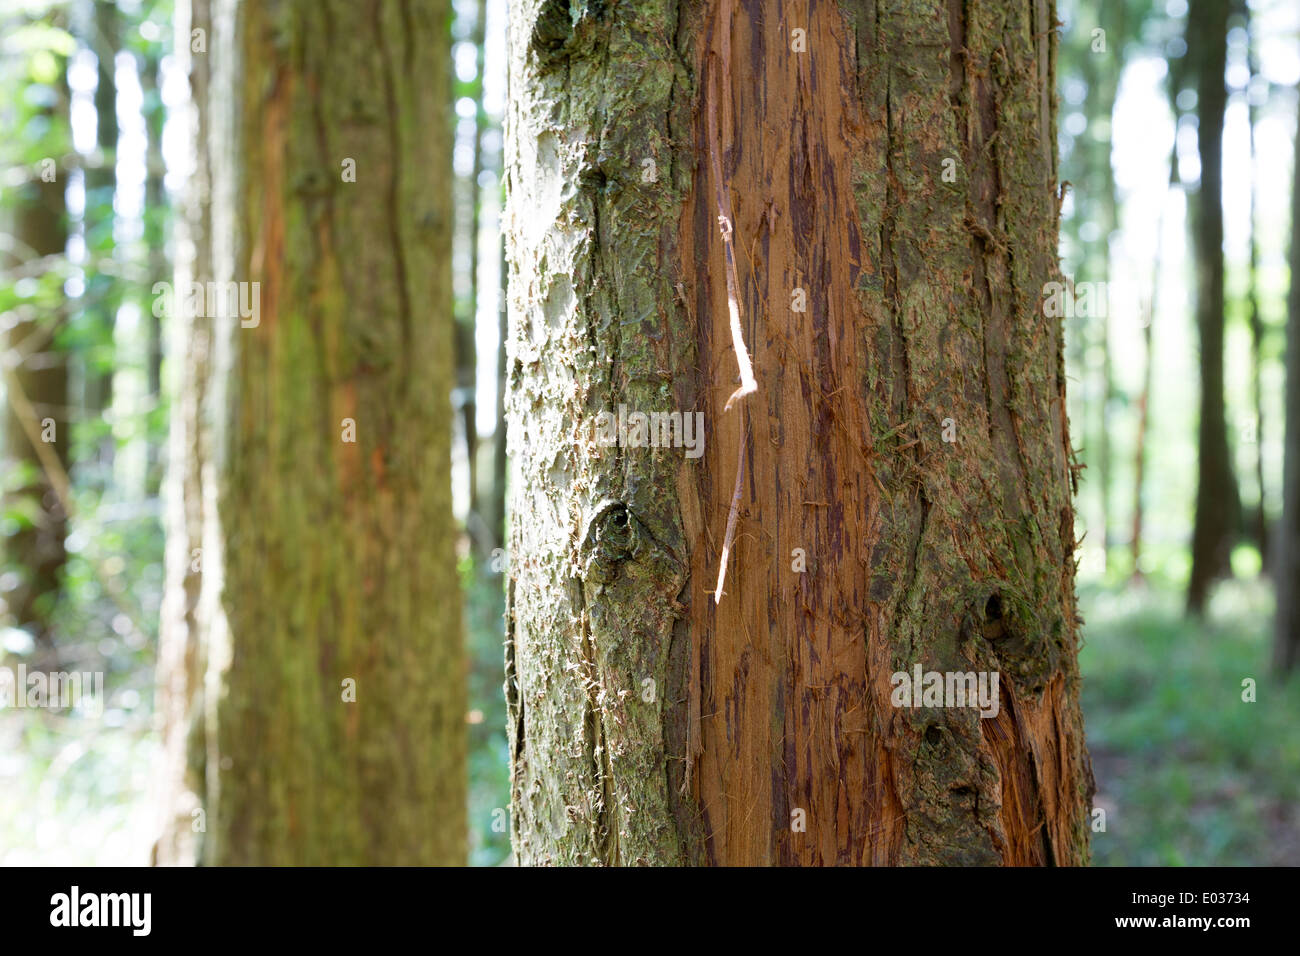 Pine tree bark damage by deer in Titchmarsh Wood, managed by the Forestry Commission, Northamptonshire, England, UK. - Stock Image